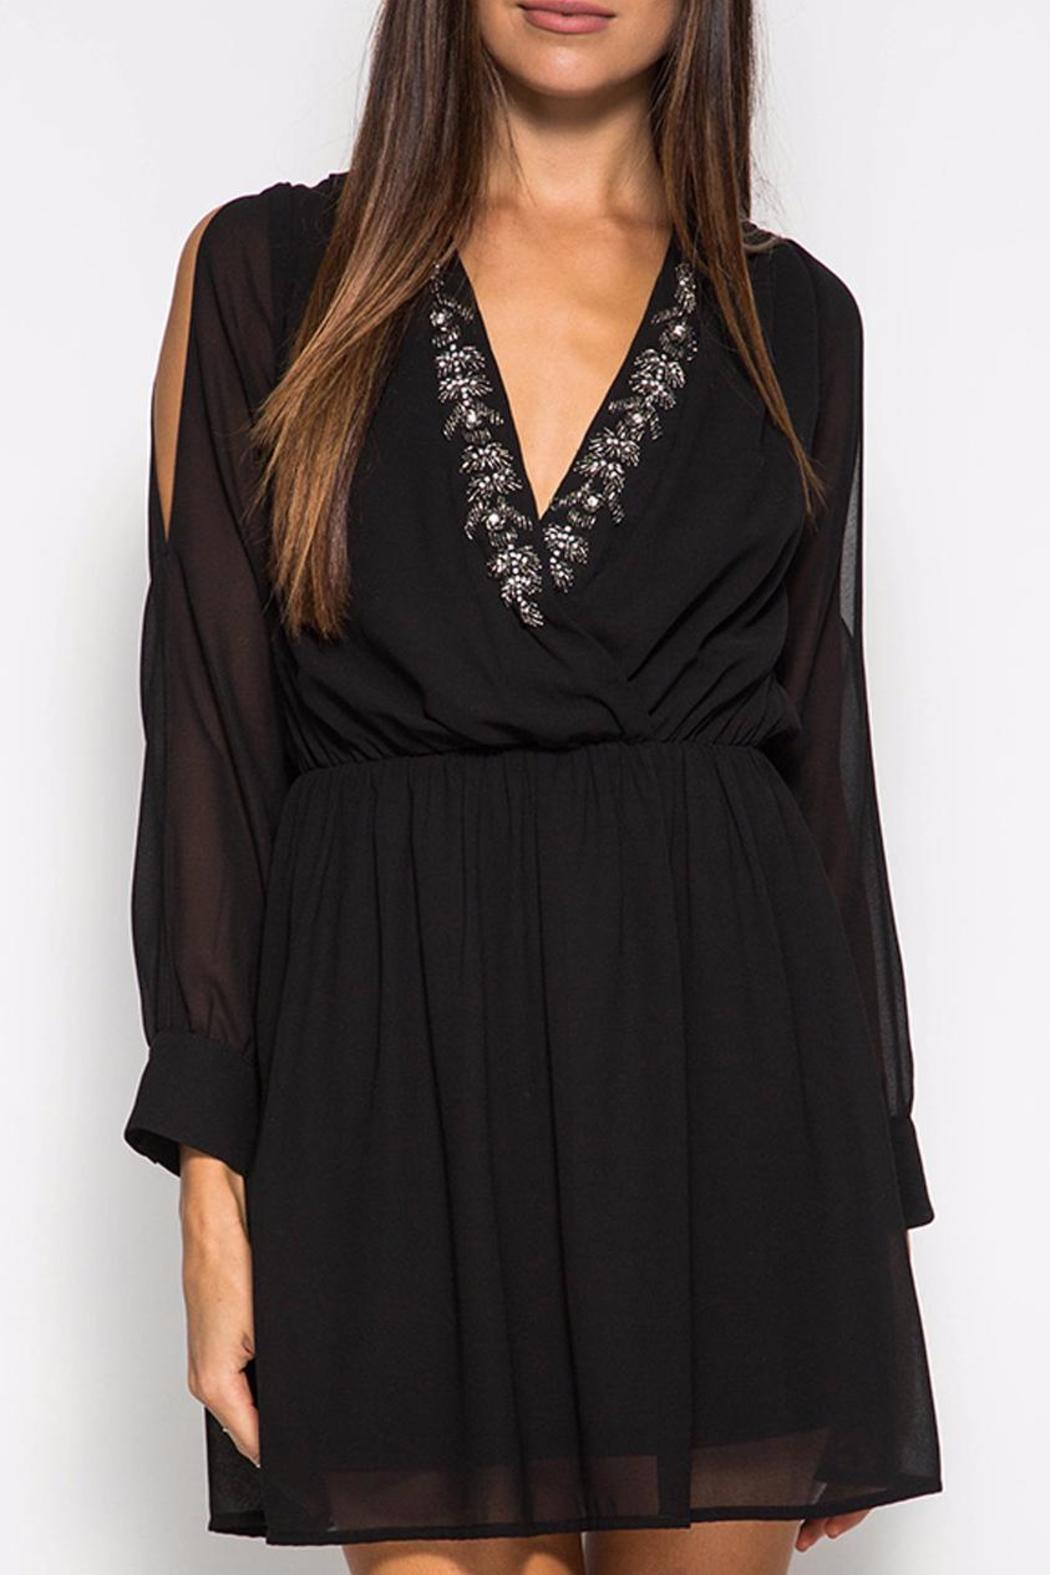 She + Sky Crystal Black Dress - Front Cropped Image